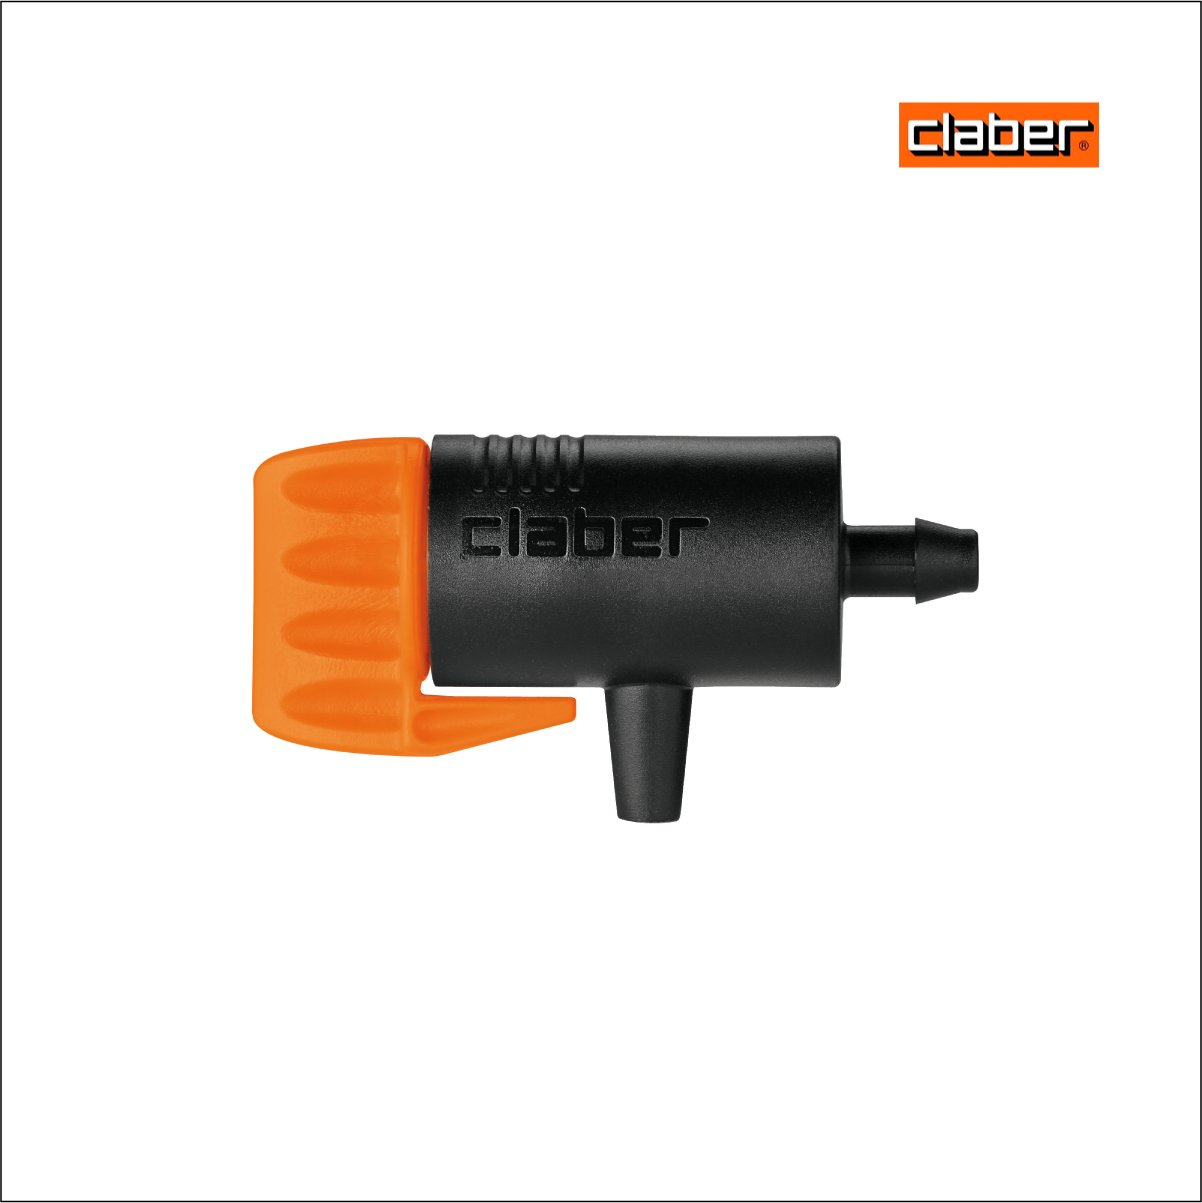 Claber Pack of 50 Rainjet End Line Drippers 0-6 litres per hour. Model 91209